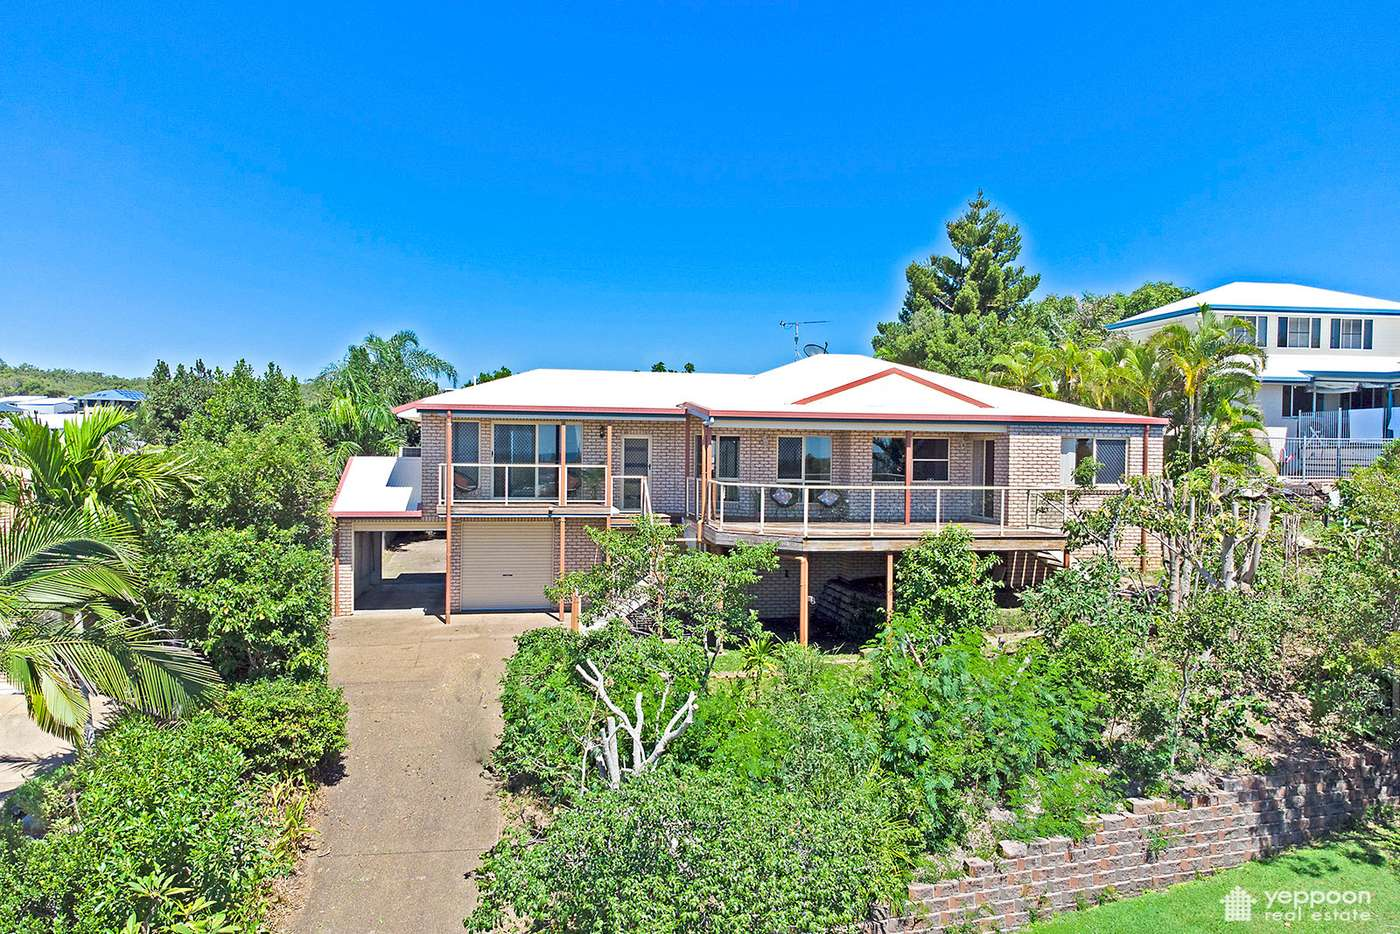 Main view of Homely house listing, 9 Salem Court, Lammermoor QLD 4703